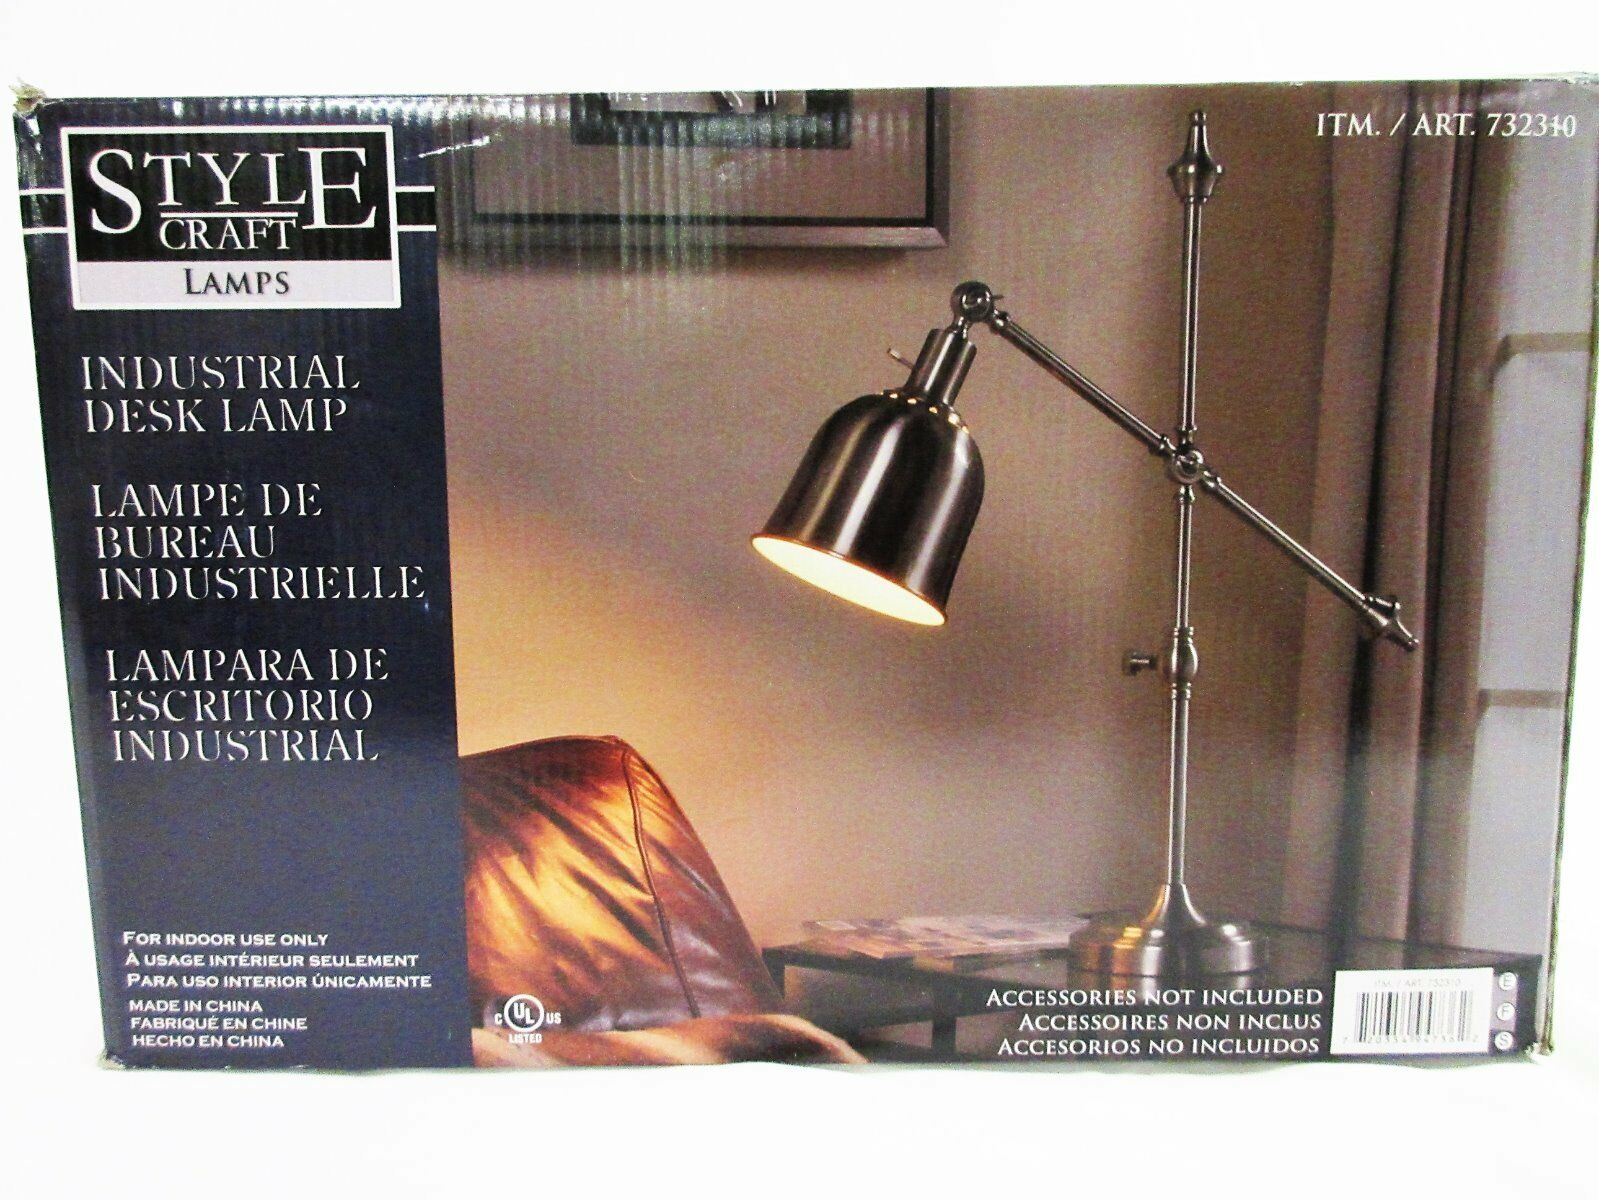 Lampe Kupfer Retro Lampe Vintage Look Top Creative Homes Exciting Vintage Industrial